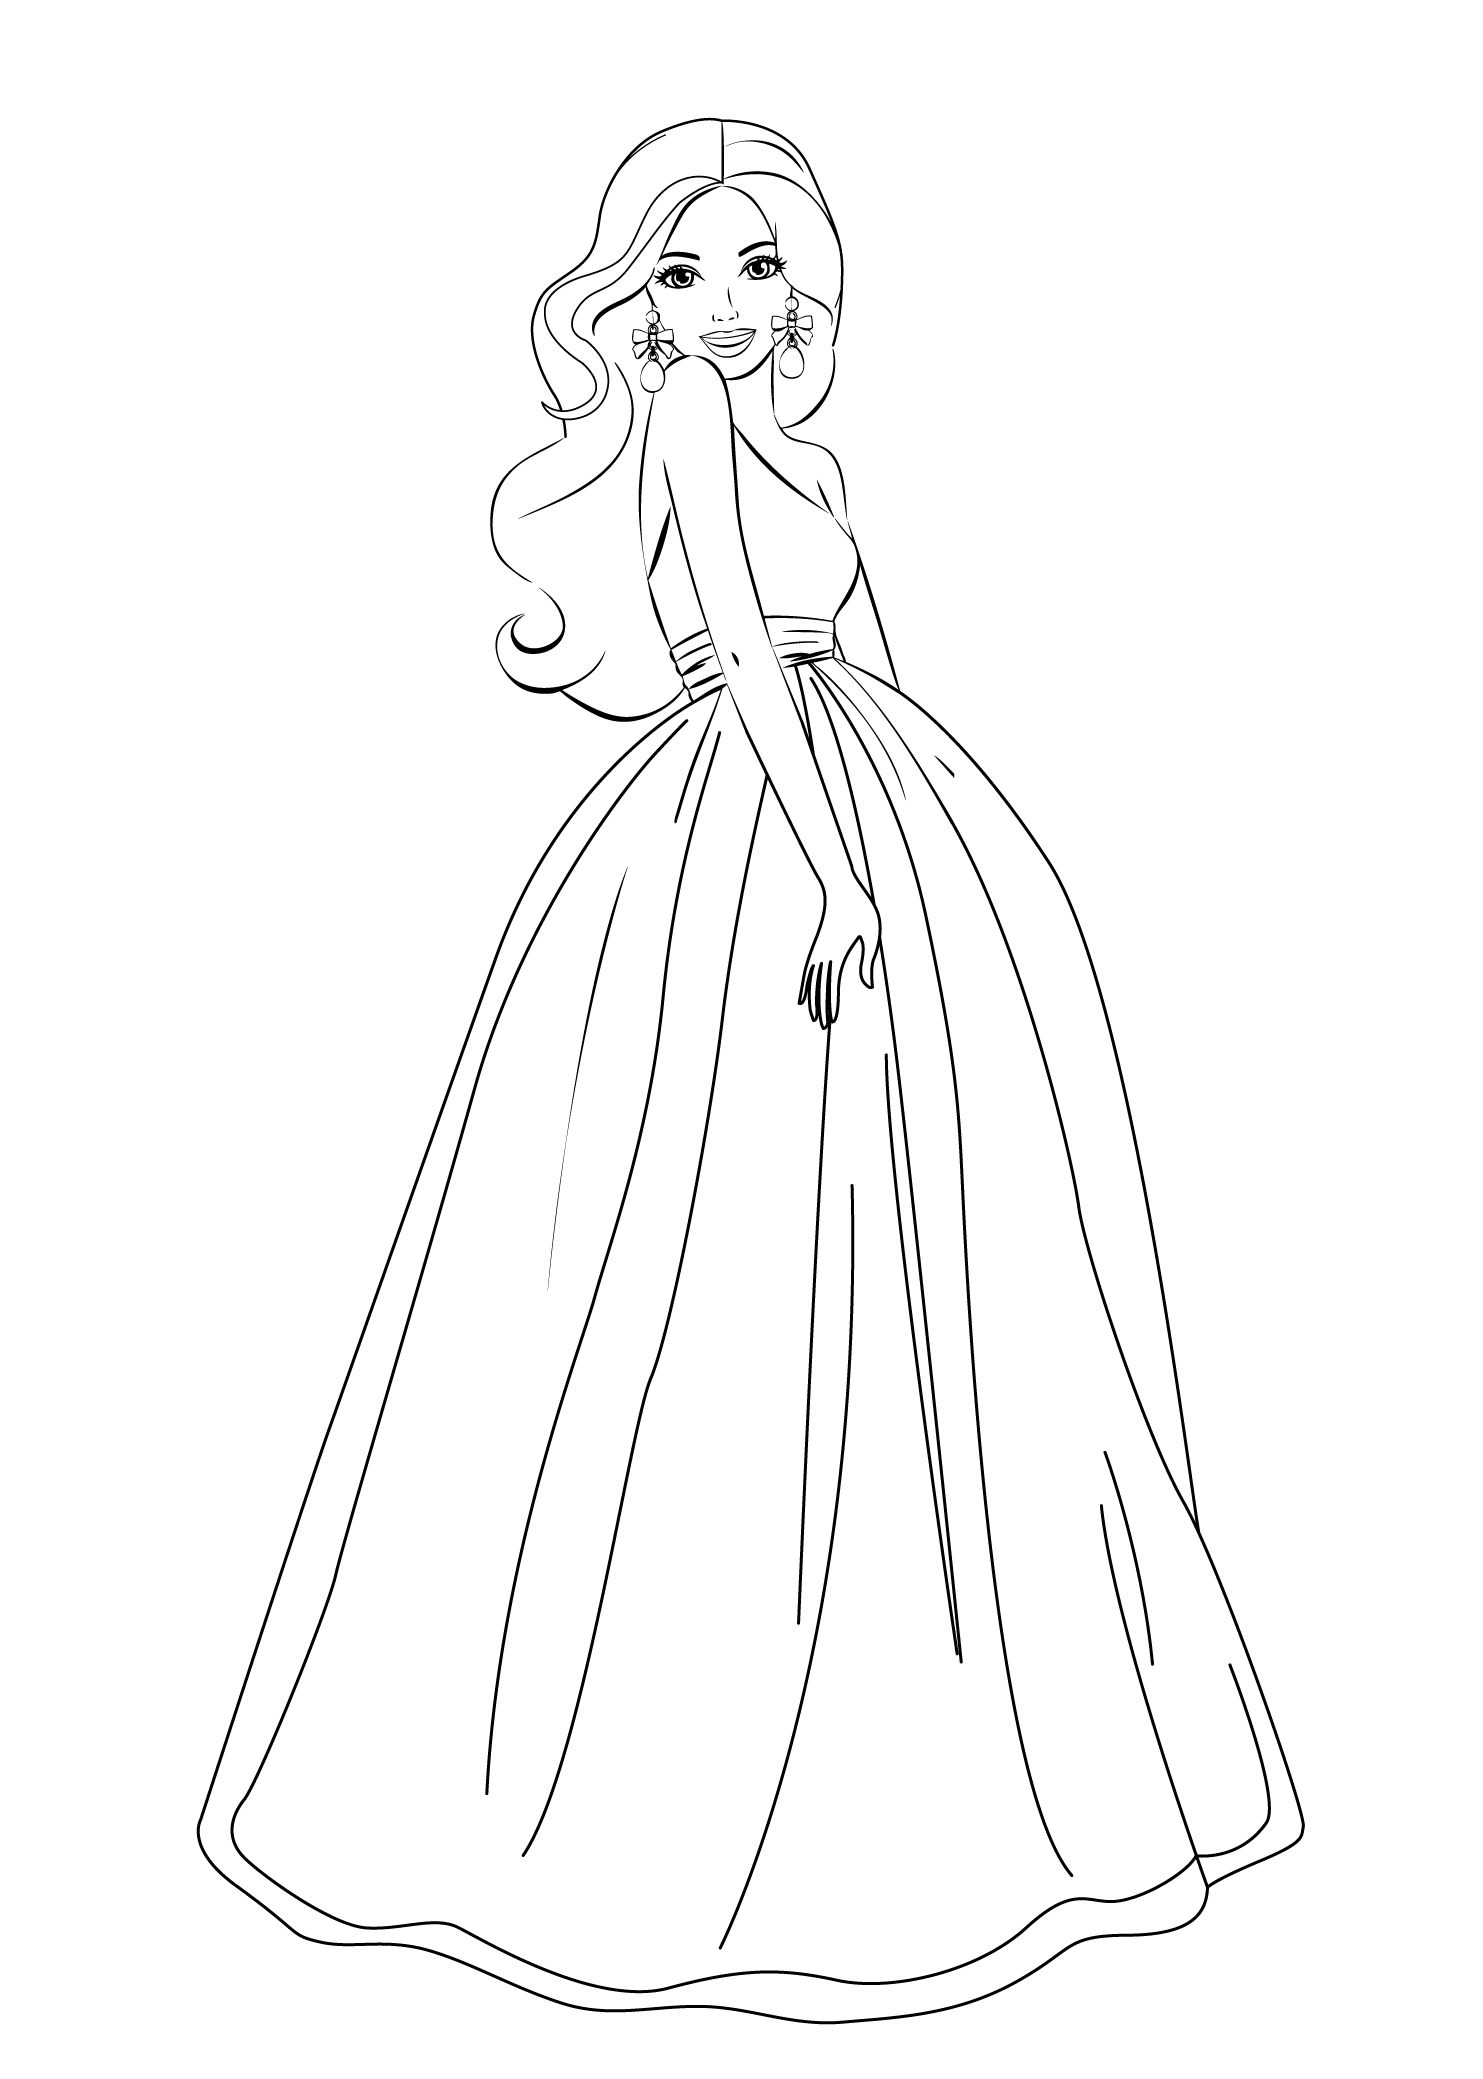 barbie print out coloring pages - photo#35